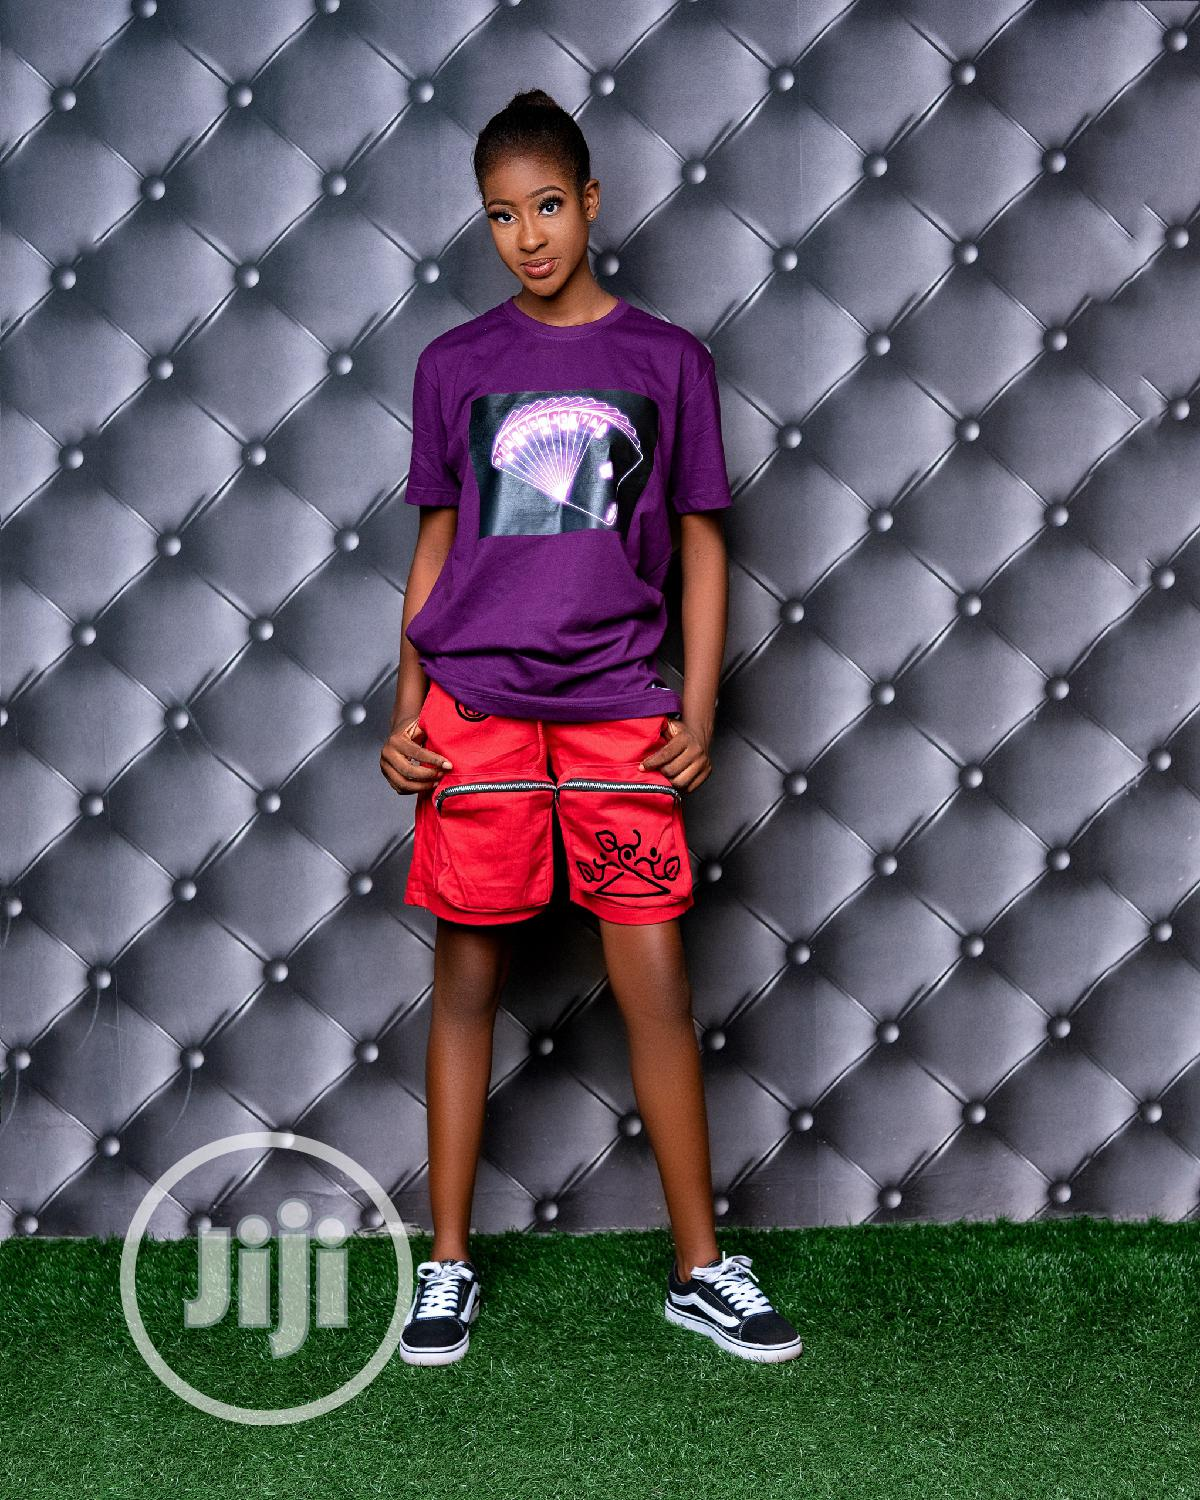 Oui Couture Affordable Tees   Clothing for sale in Oshimili South, Delta State, Nigeria